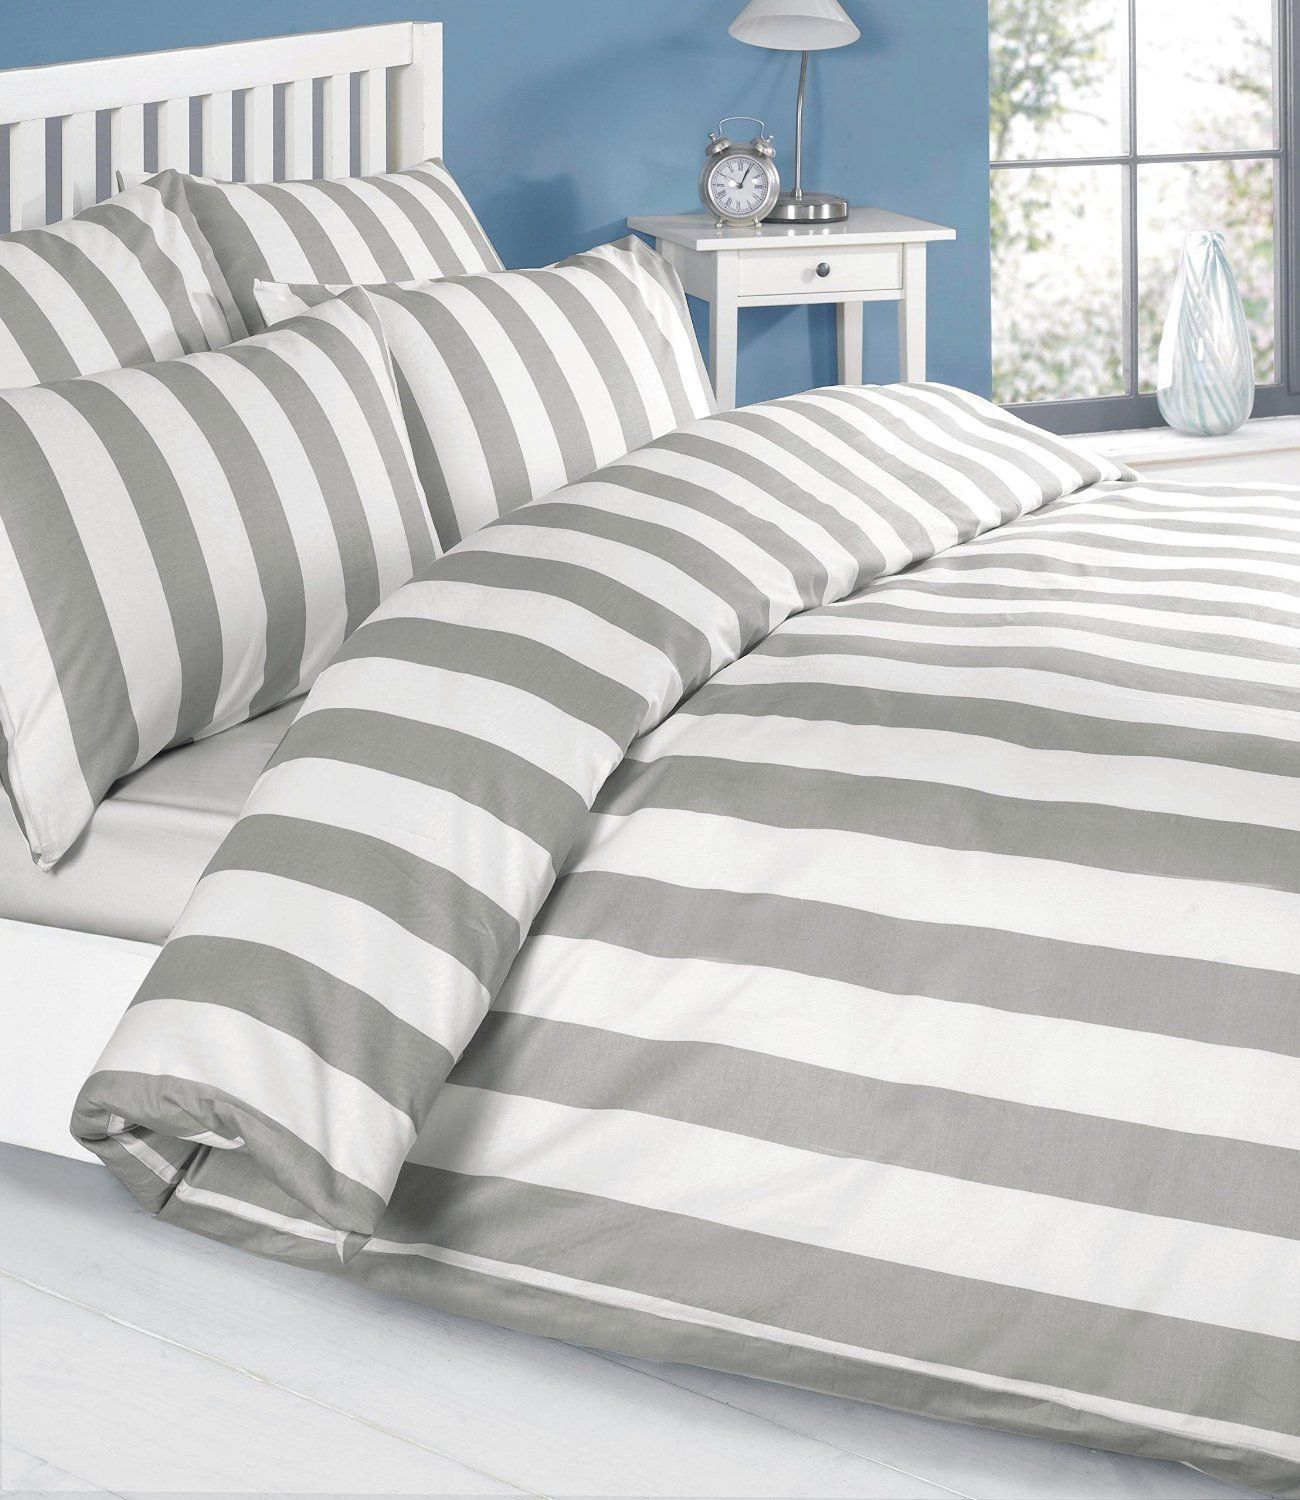 Louisiana Duvet Set Single 100 Cotton Grey Amazon Co Uk